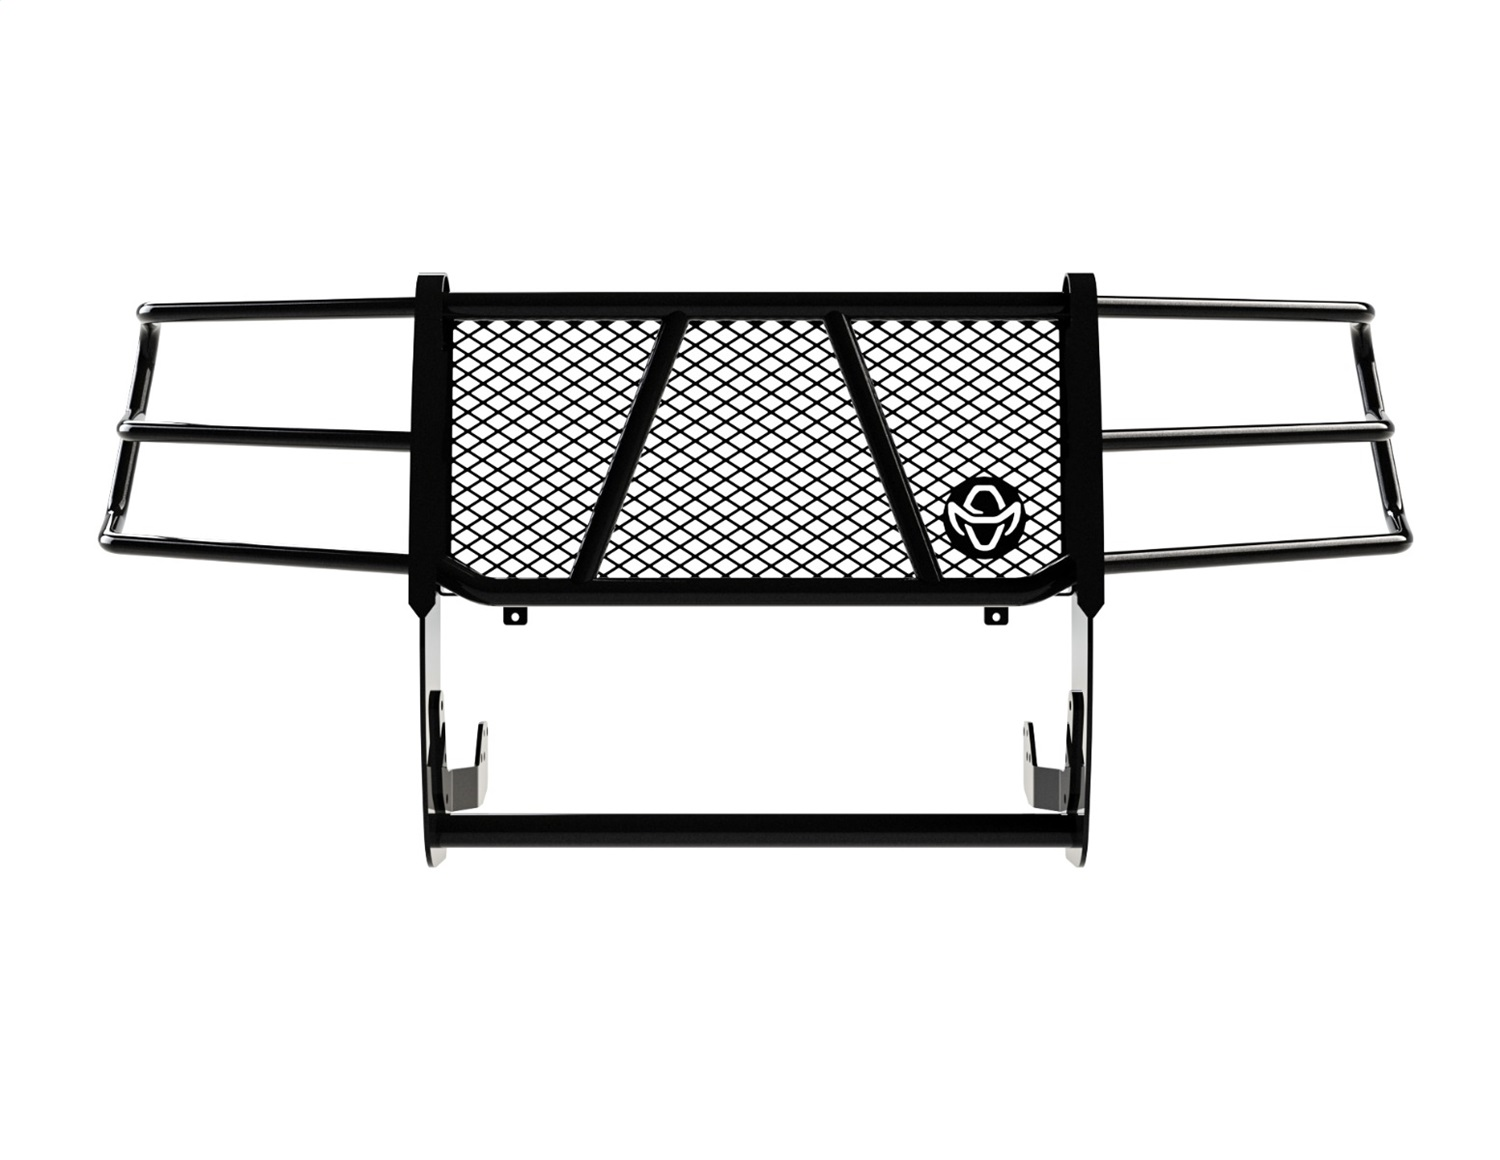 Legend Series Grille Guard, Retains Factory Tow Hook And Fog Lights, Must Use PSC19HBL1 For Sensors